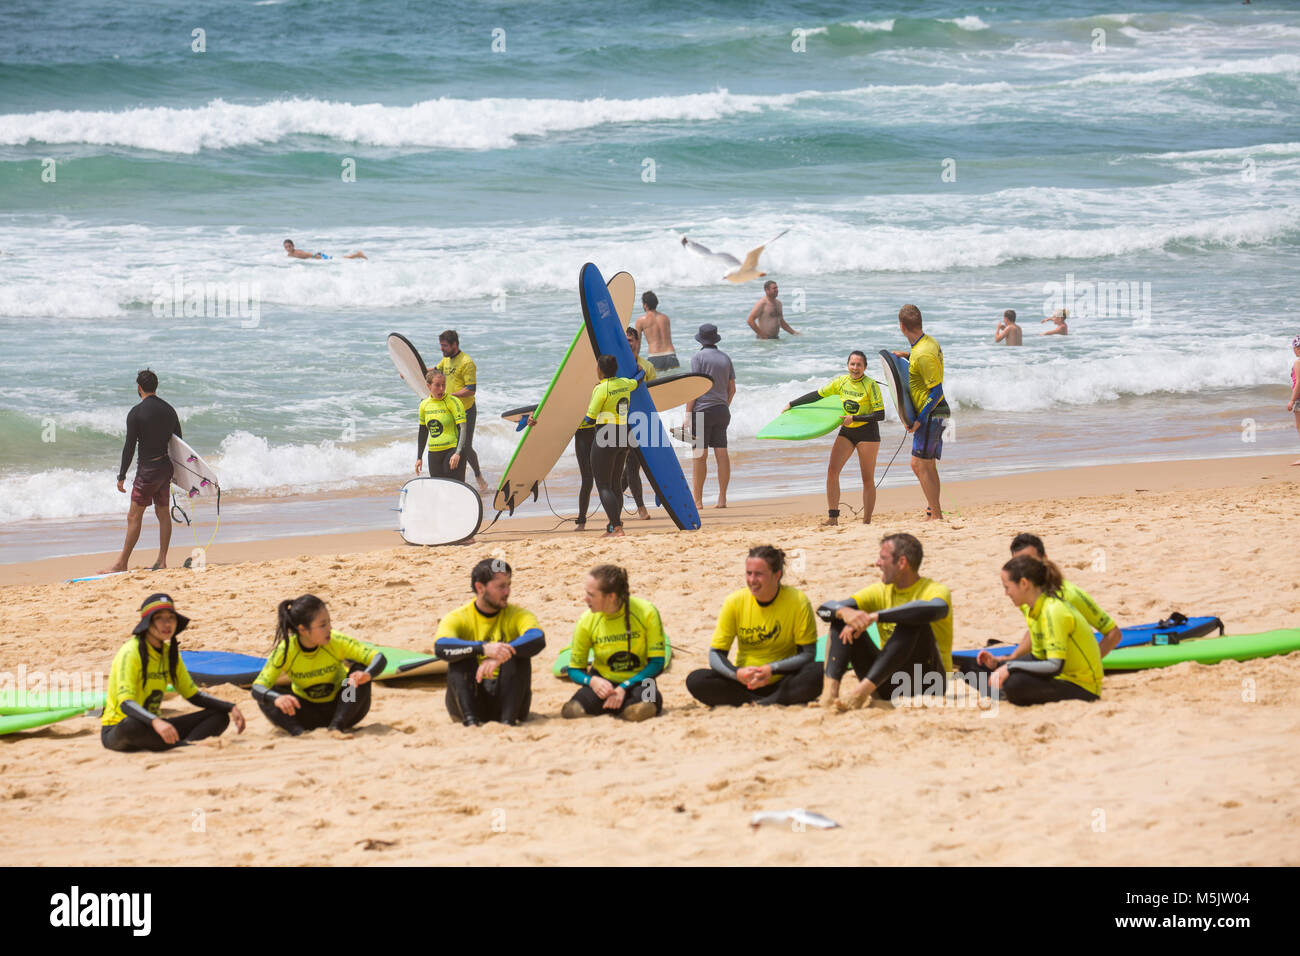 People having a surf lesson with Manly surf school on Manly beach in Sydney,Australia - Stock Image